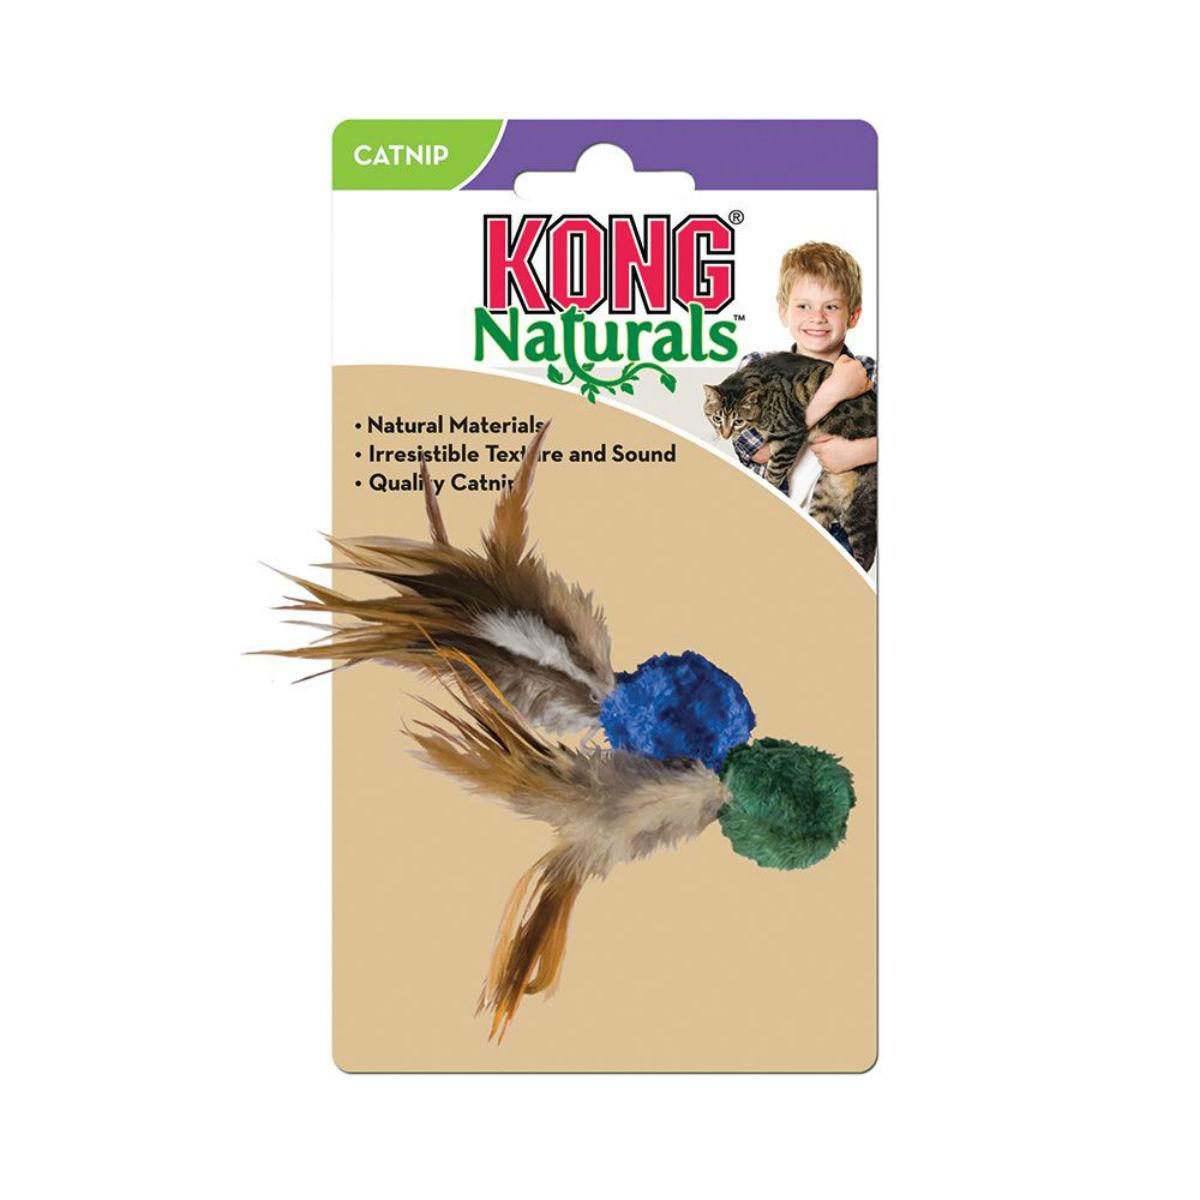 KONG Naturals Ball with Feathers Cat Toy